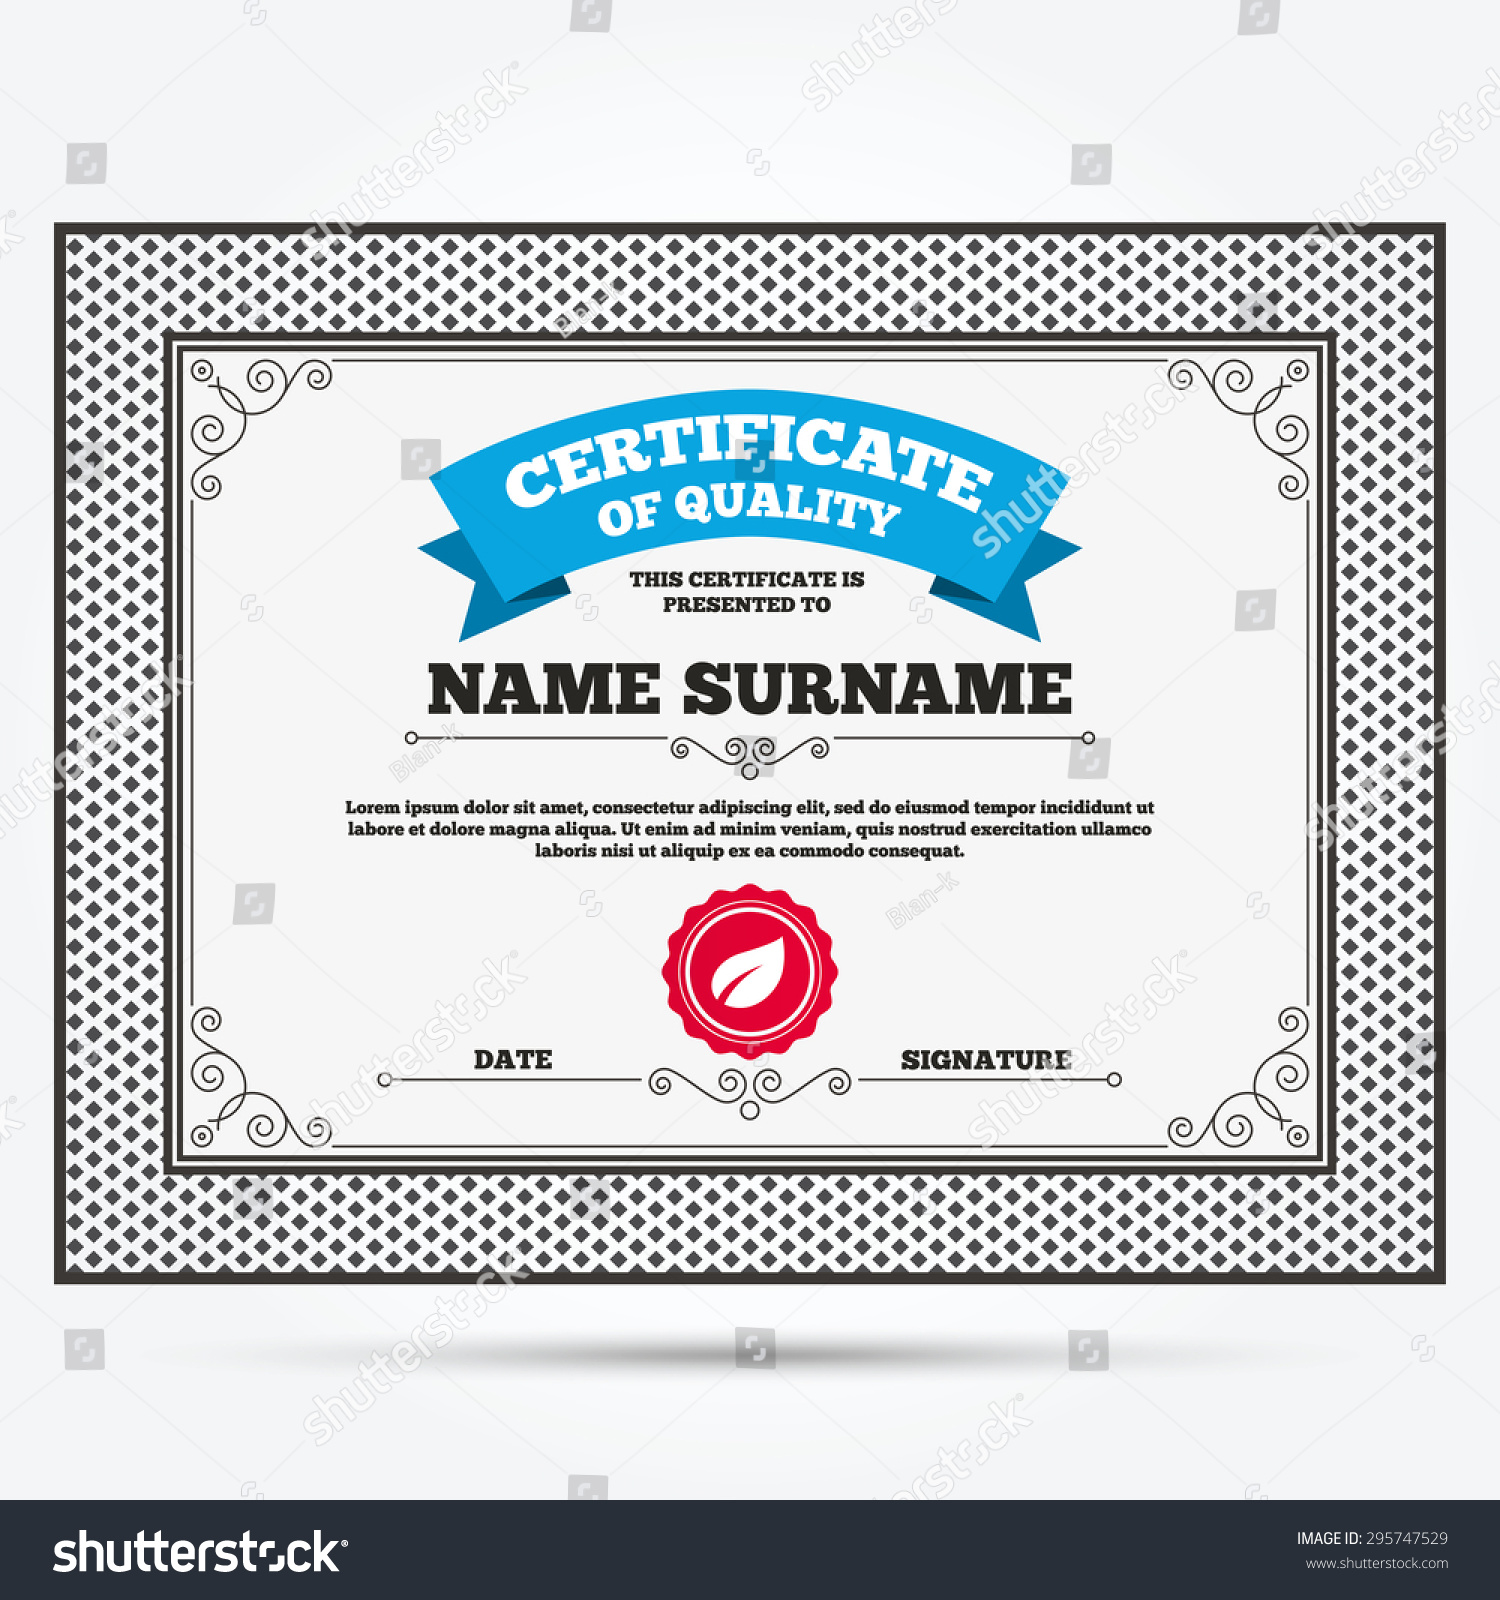 Certificate quality leaf sign icon fresh stock vector 2018 certificate of quality leaf sign icon fresh natural product symbol template with vintage yadclub Gallery